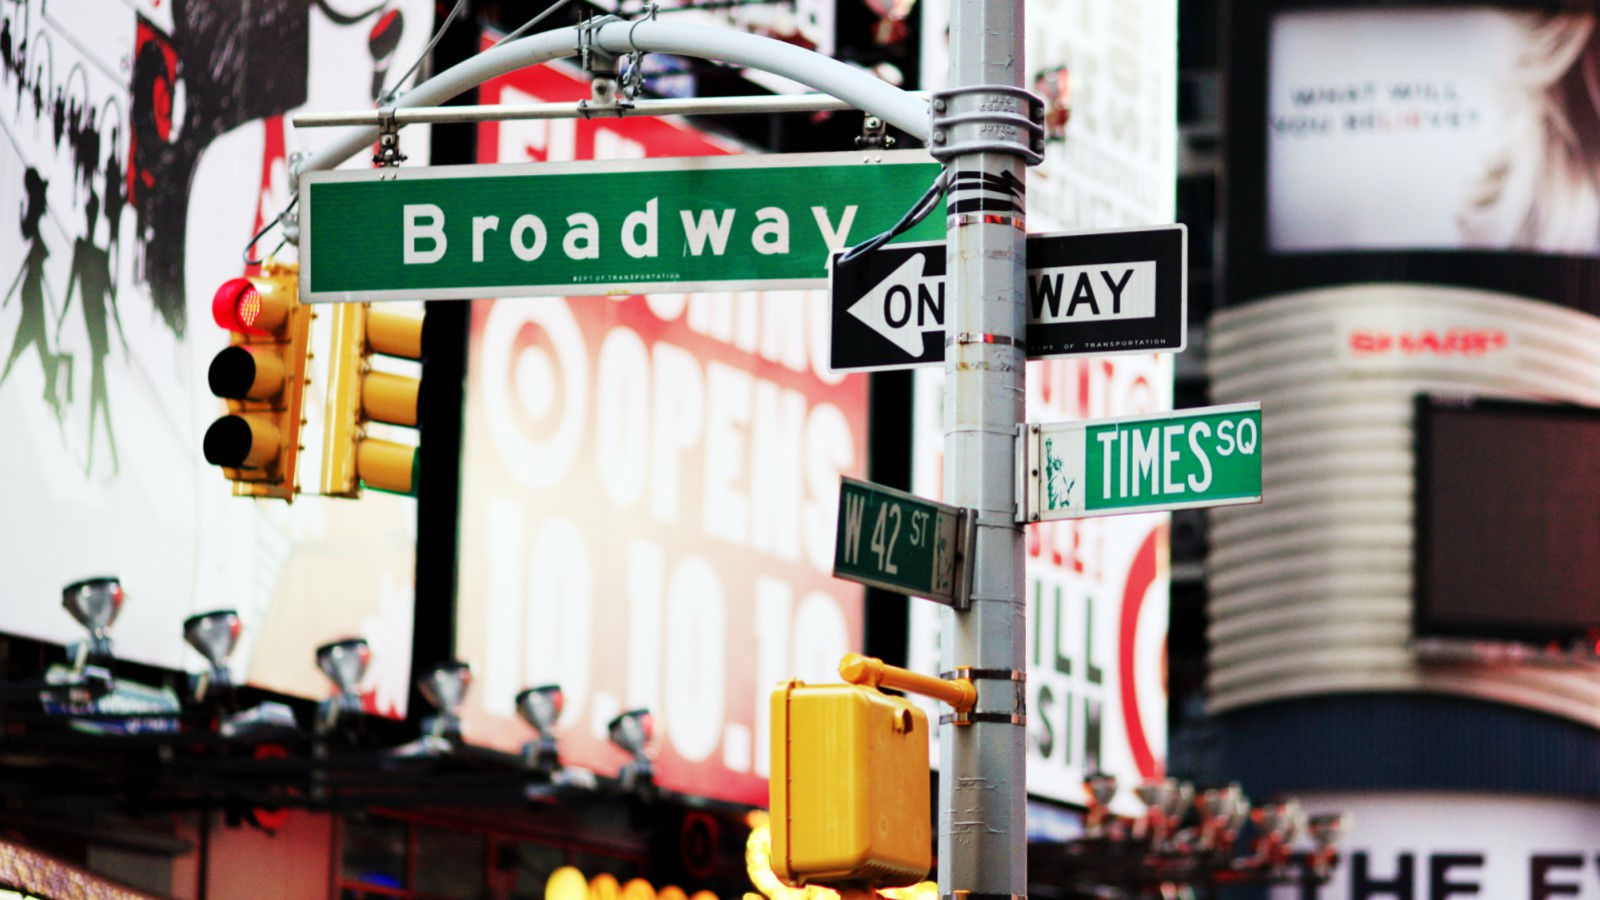 Things To Do in NYC - Broadway Theaters